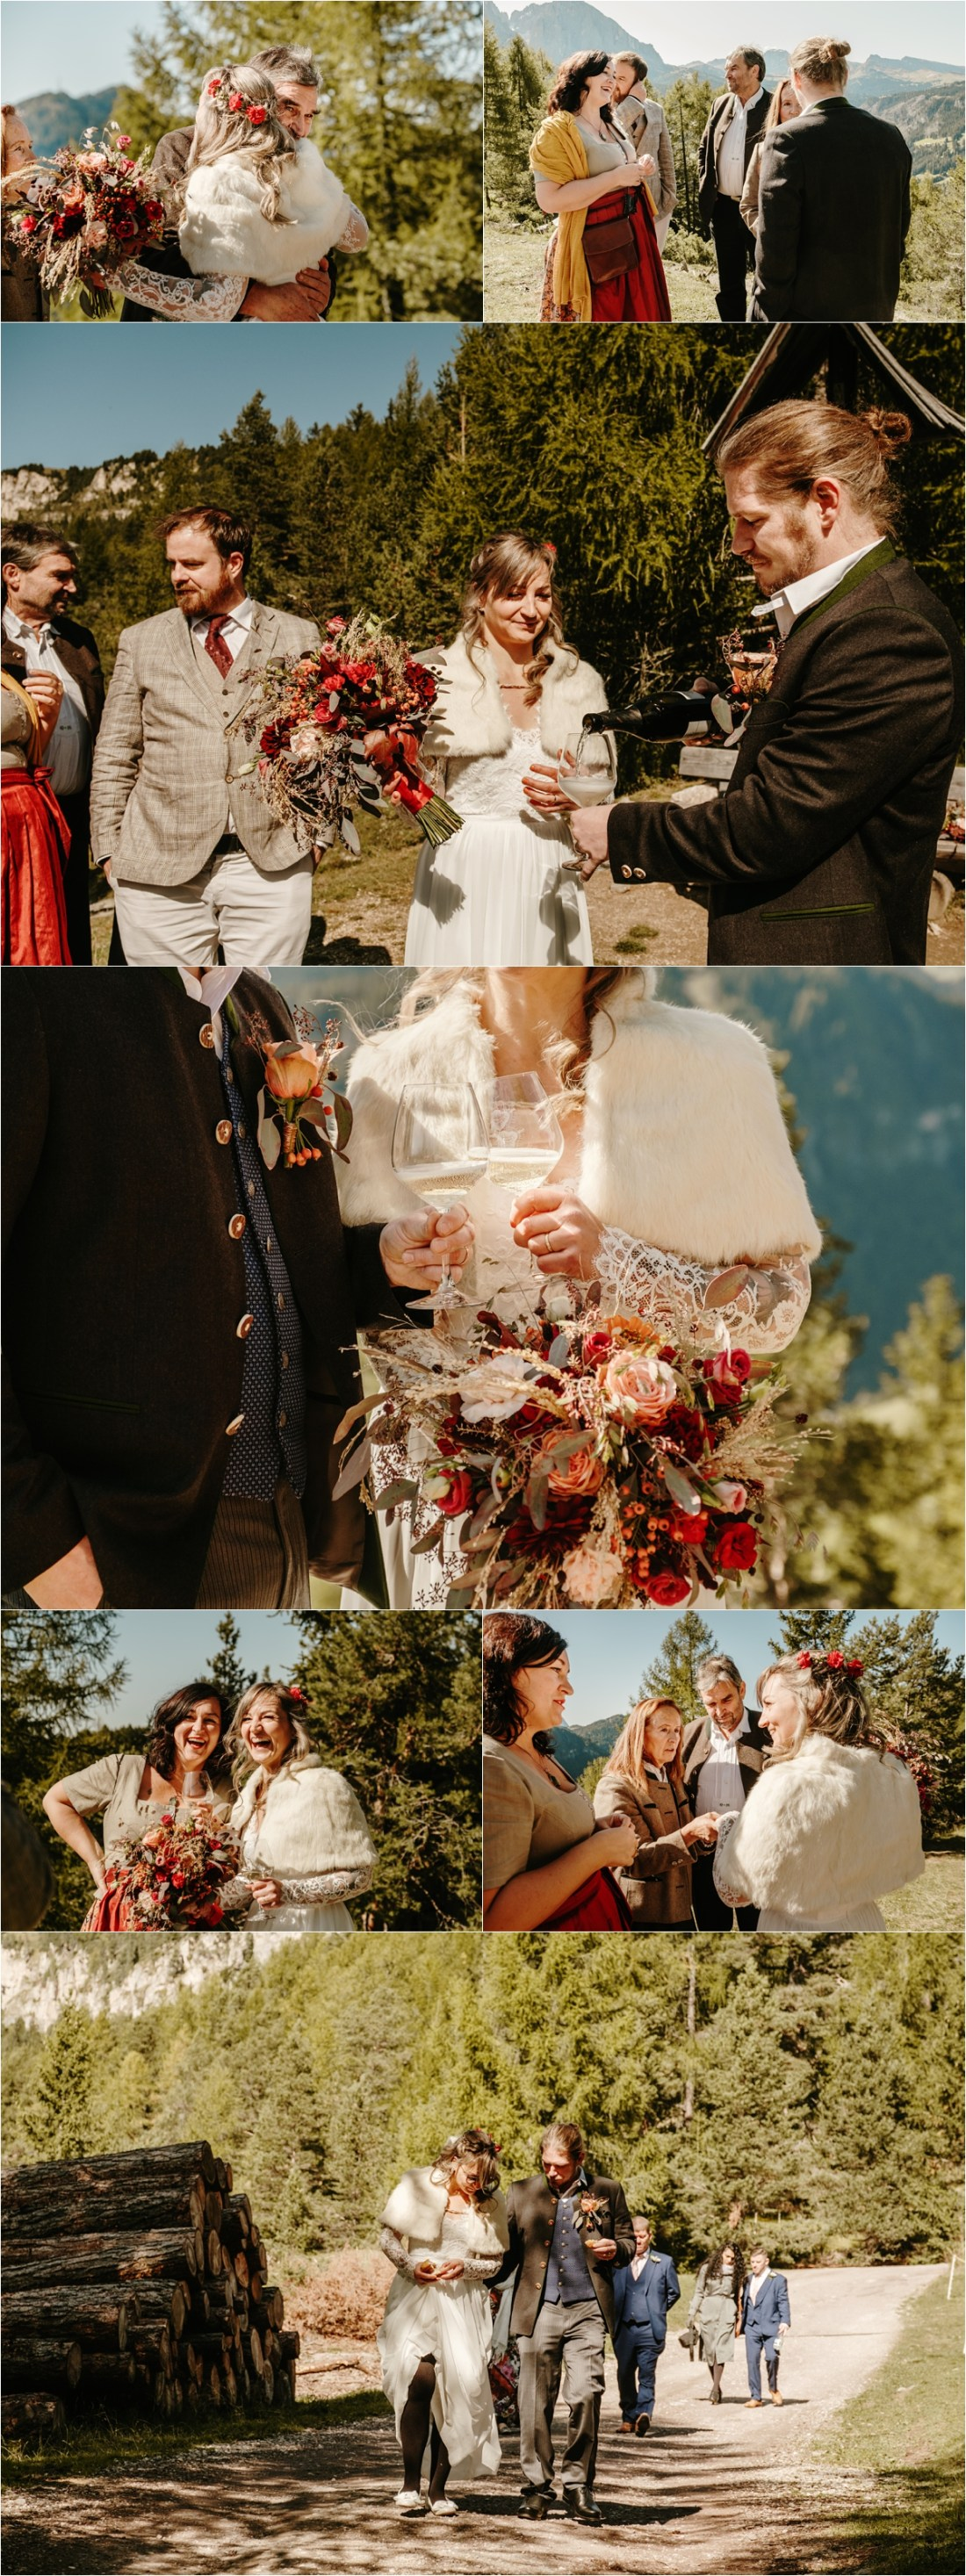 The bride and groom celebrate with their family after their elopement in the Dolomites. Photos by Wild Connections Photography